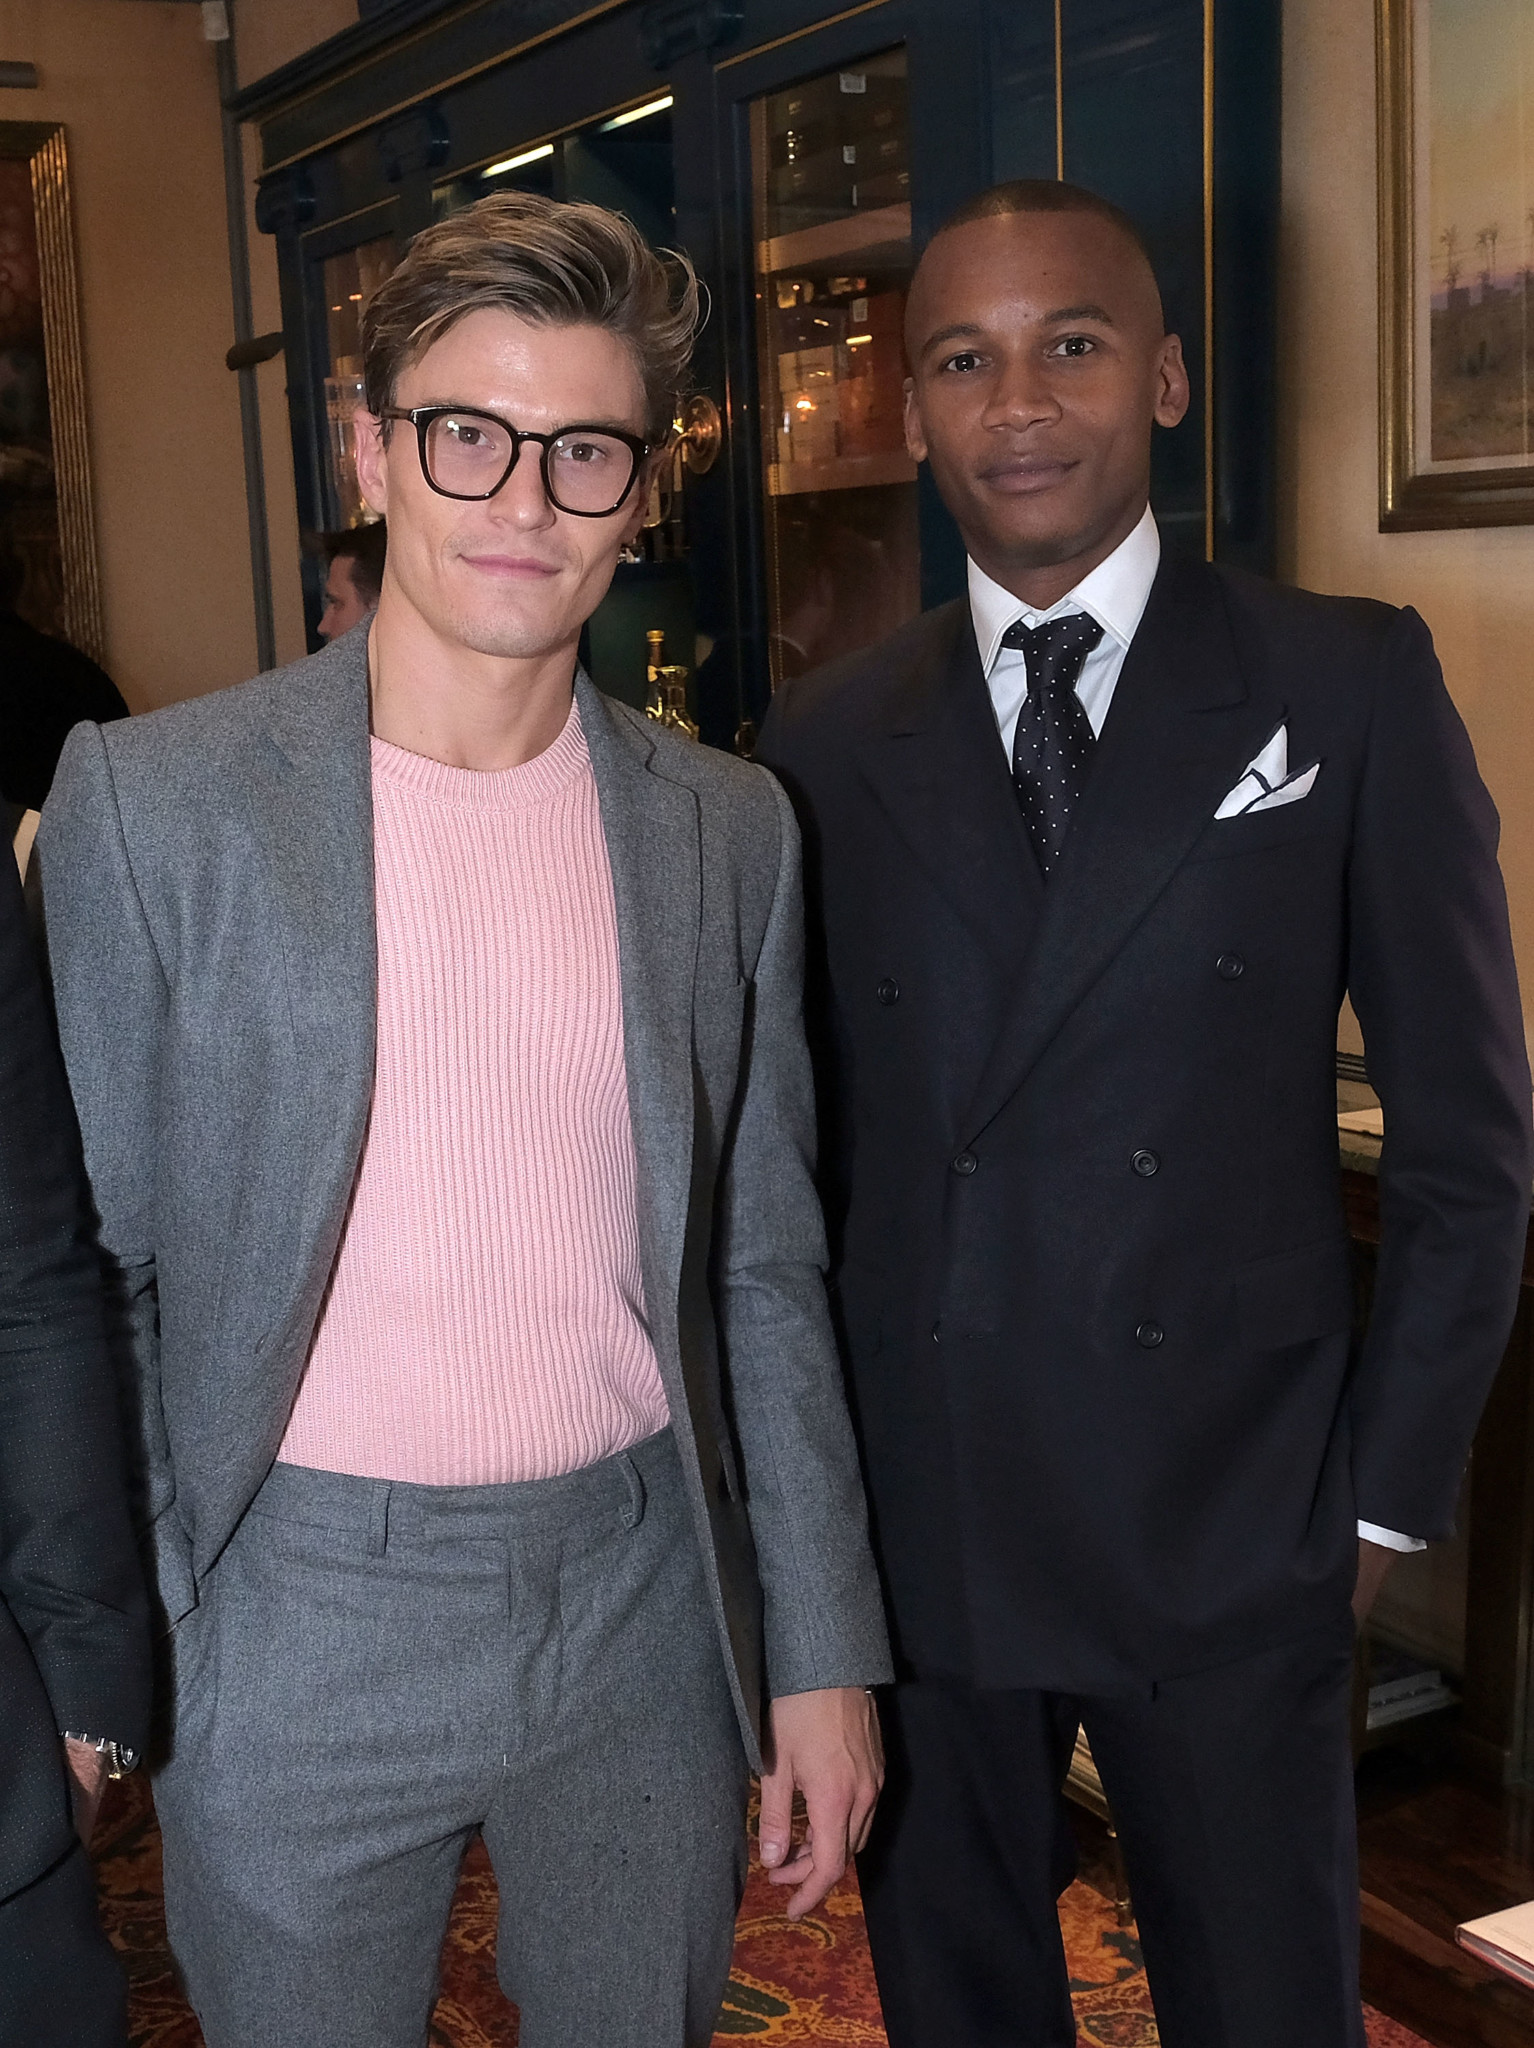 LONDON, ENGLAND - OCTOBER 04: Oliver Cheshire (L) and Eric Underwood attend the Breguet Classic Tour #MyBreguetMoment in association with The Gentleman's Journal at Mark's Club on October 4, 2017 in London, England. (Photo by David M. Benett/Dave Benett/Getty Images for Breguet) *** Local Caption *** Oliver Cheshire; Eric Underwood